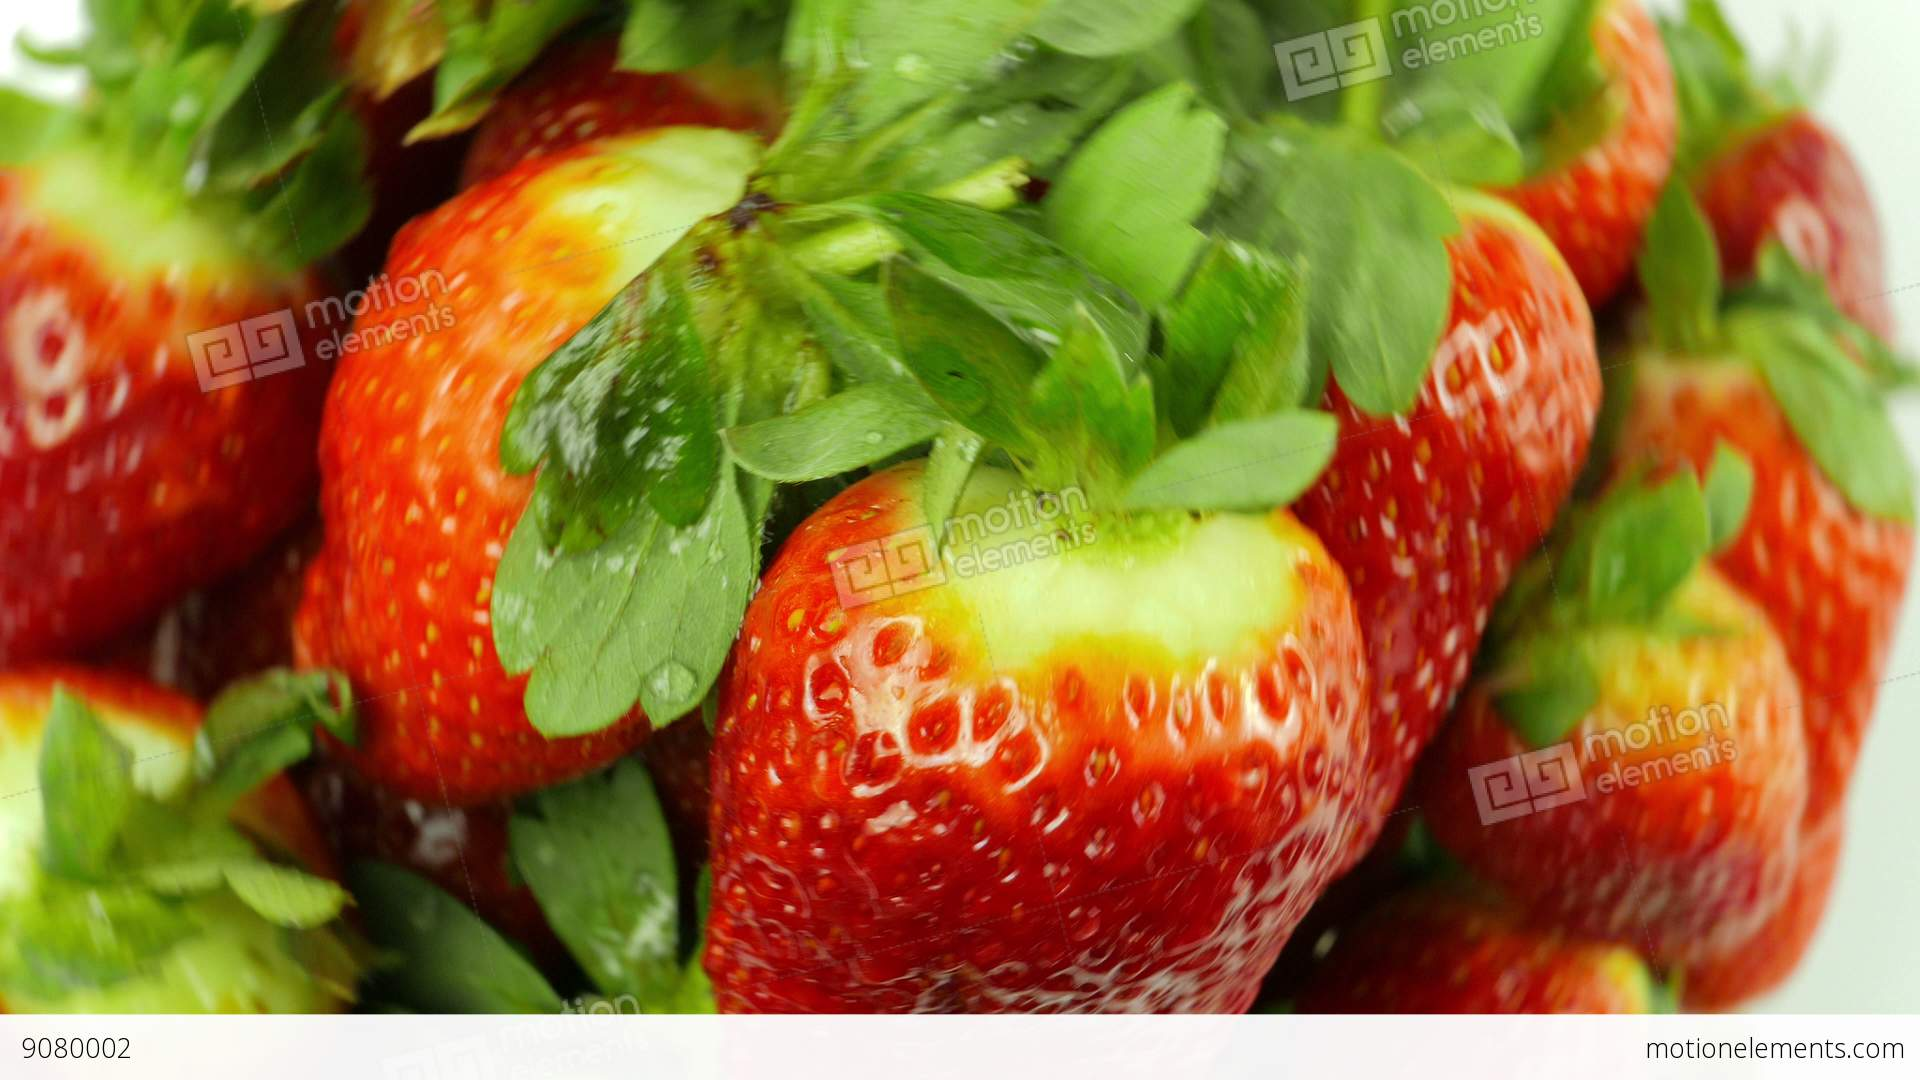 Background image rotate 90 - Top Down View Of Rotating Strawberries On White Background Stock Video Footage